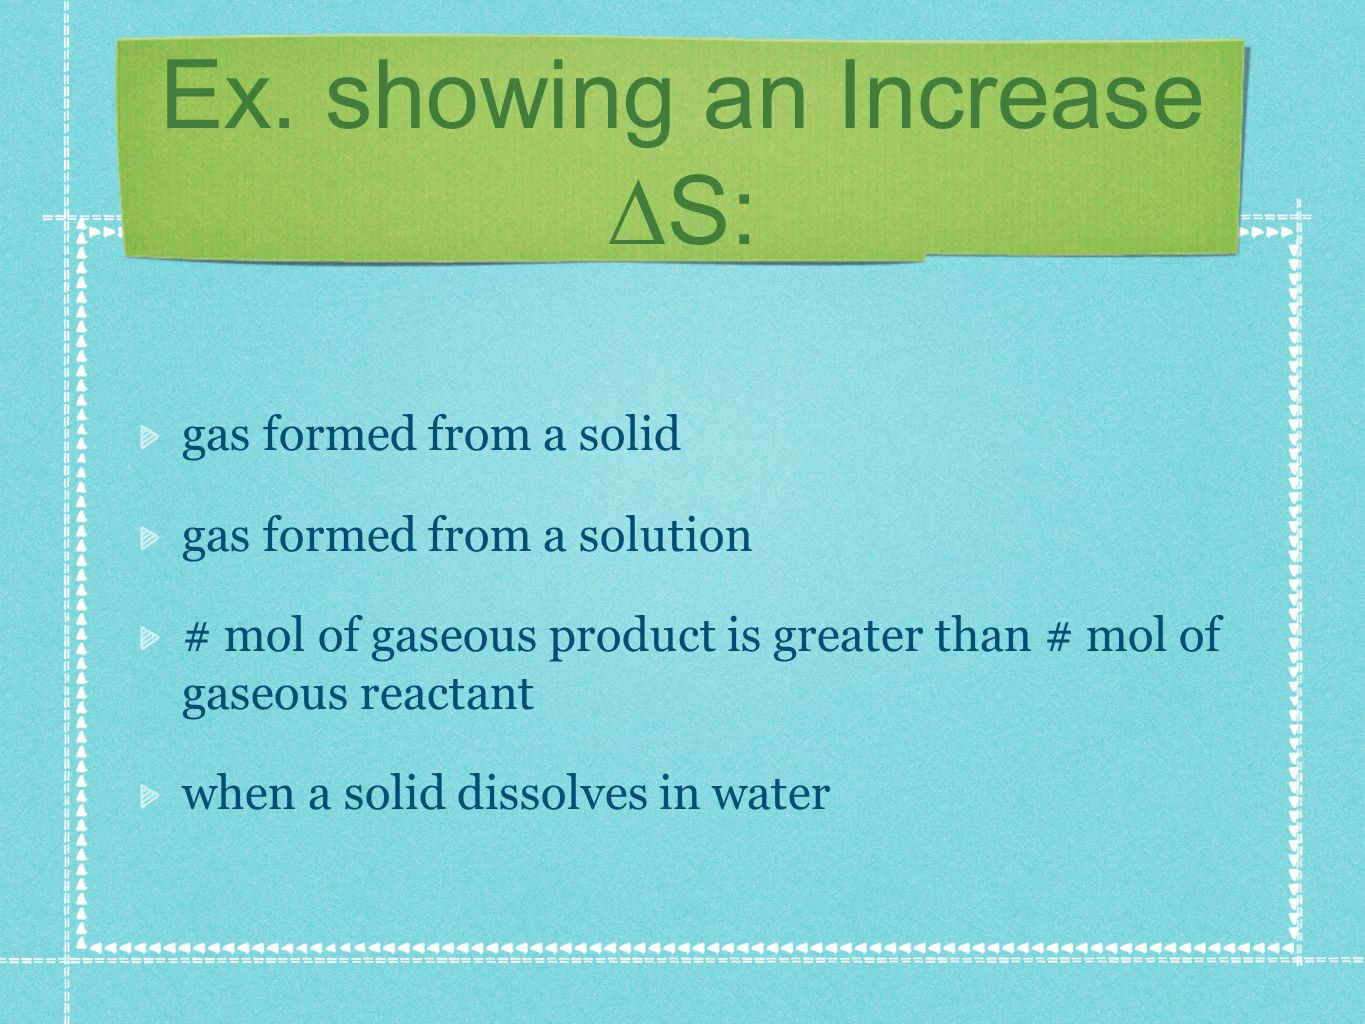 Ex. showing an Increase S: gas formed from a solid gas formed from a solution # mol of gaseous product is greater than # mol of gaseous reactant when